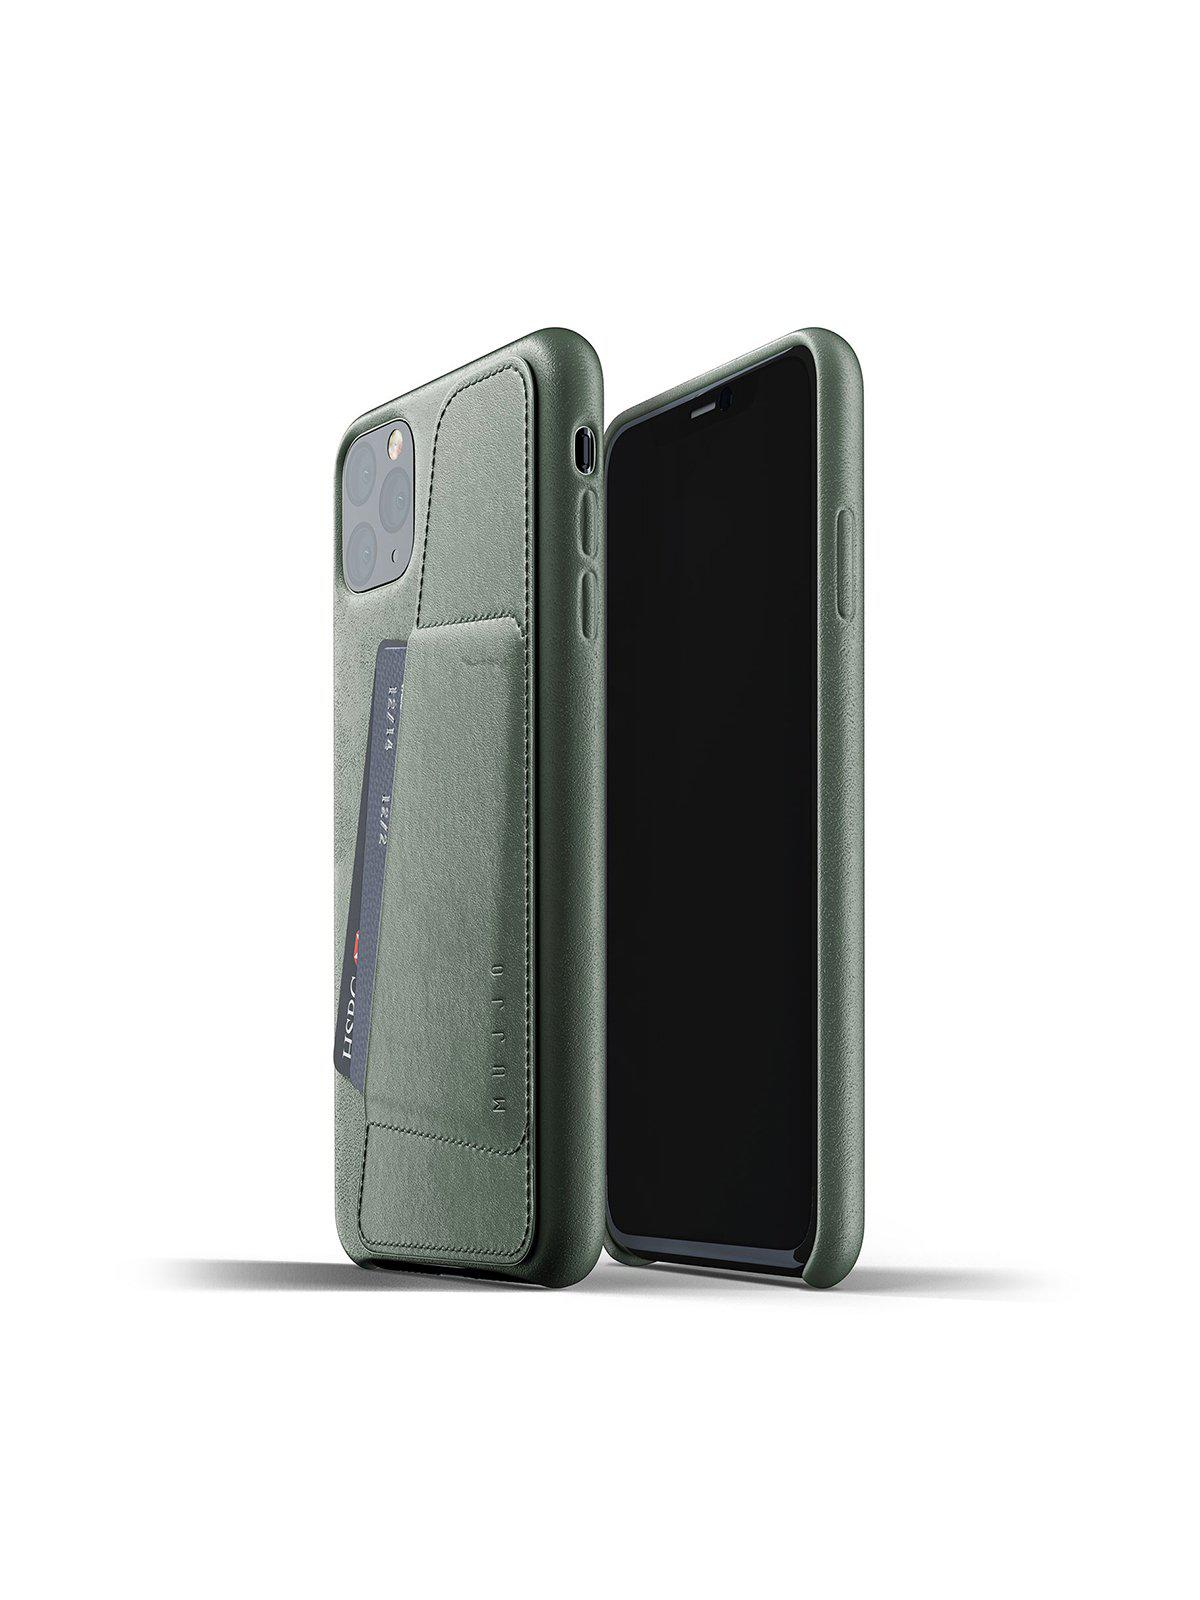 Mujjo Full Leather Wallet Case for iPhone 11 Pro Max Slate Green - MORE by Morello Indonesia